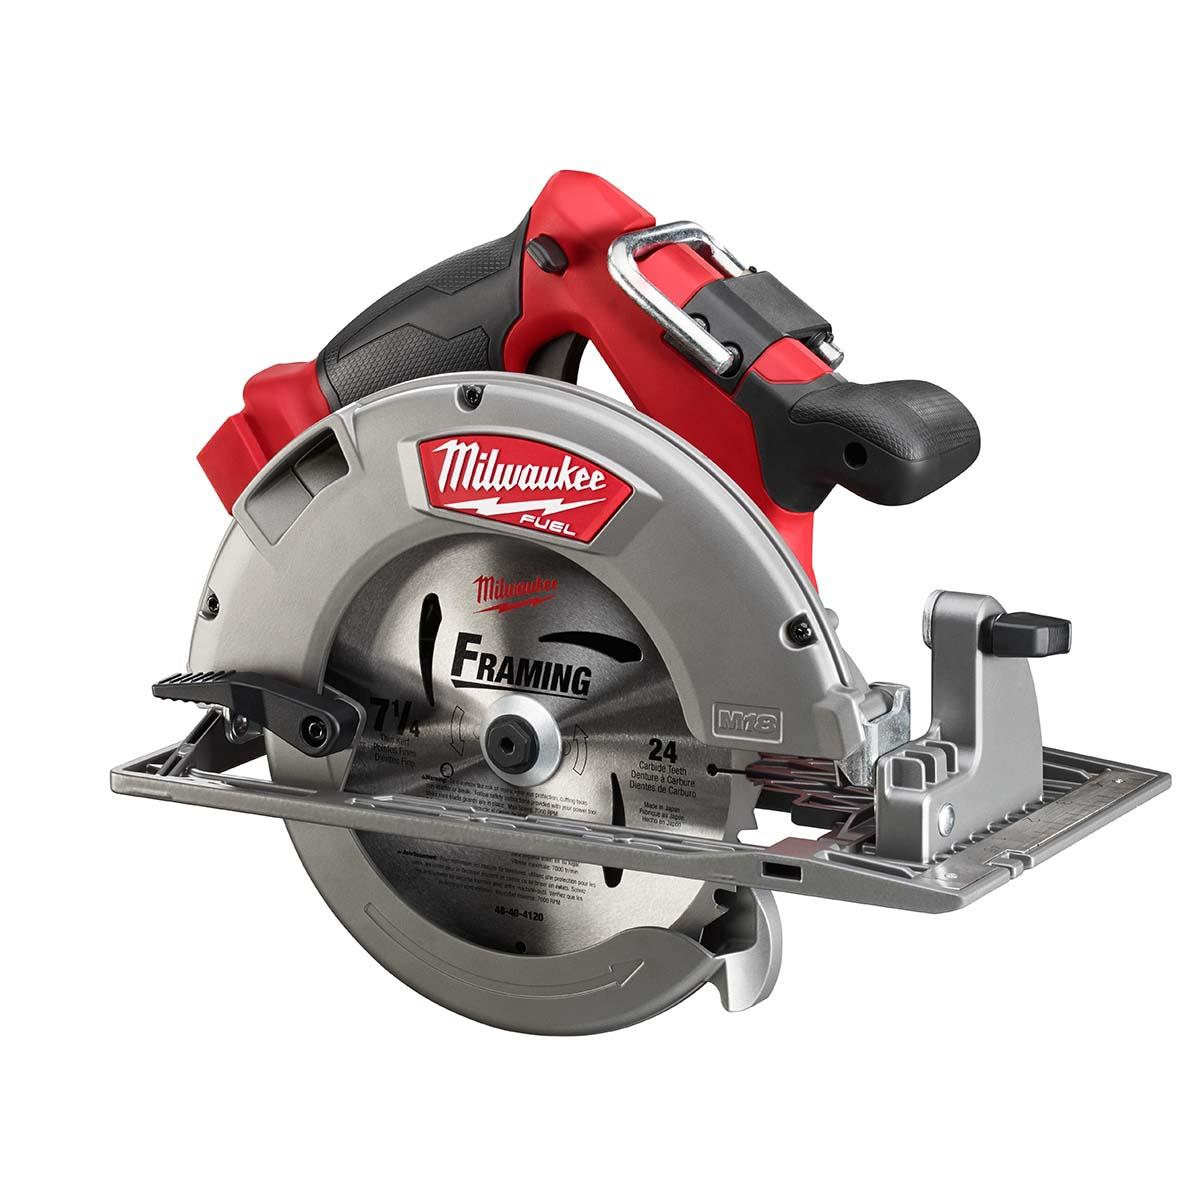 "M18 FUEL™ 7-1/4"" Circular Saw (Bare Tool)"